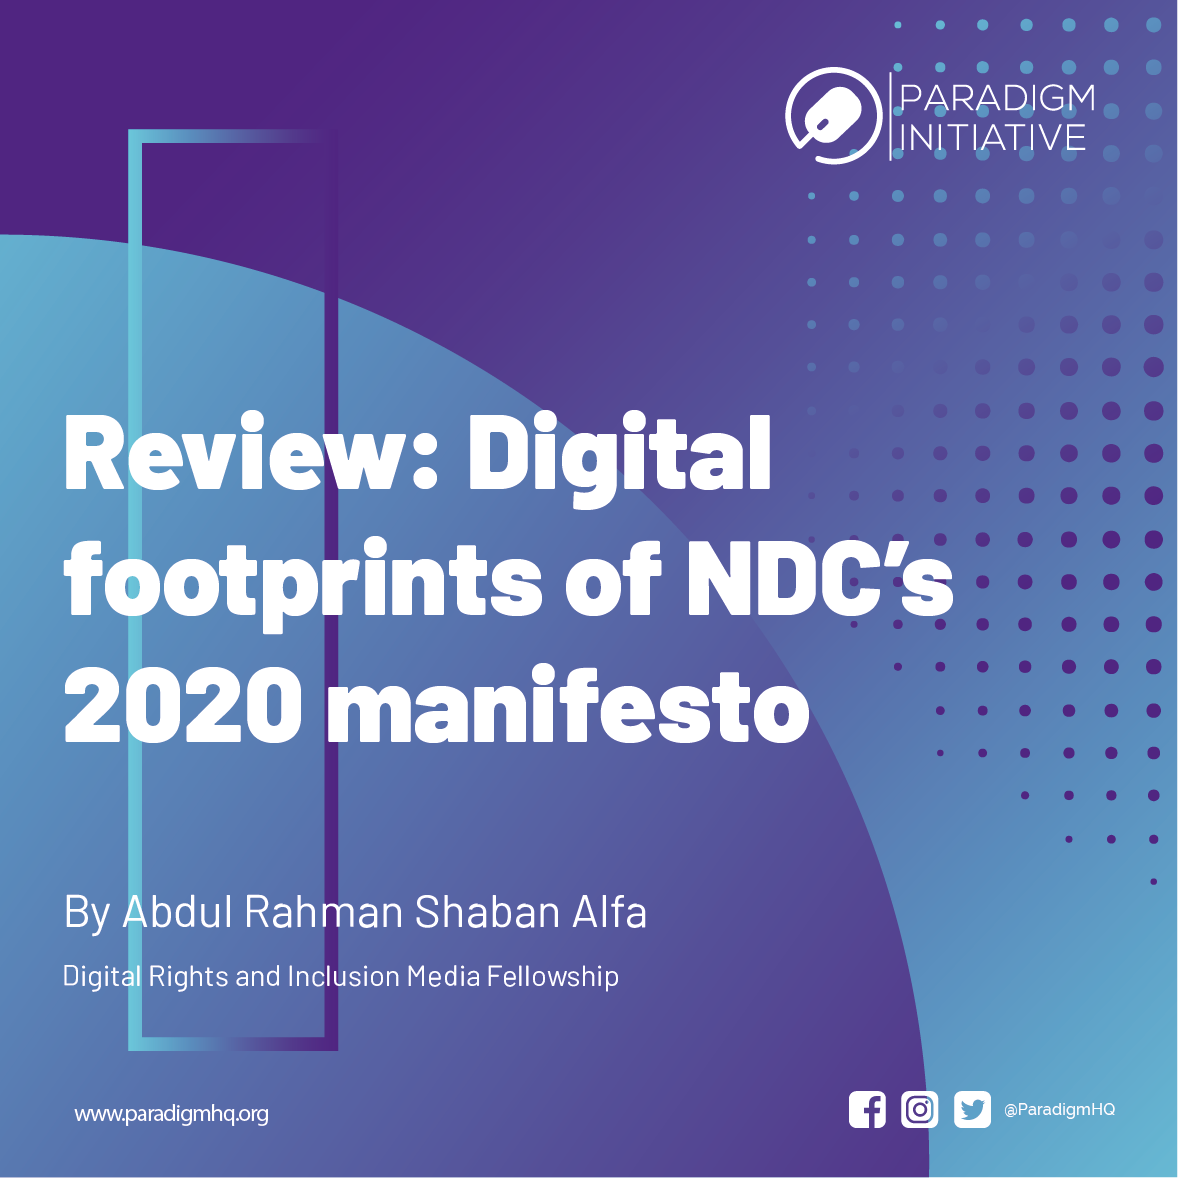 Review: Digital footprints of NDC's 2020 manifesto